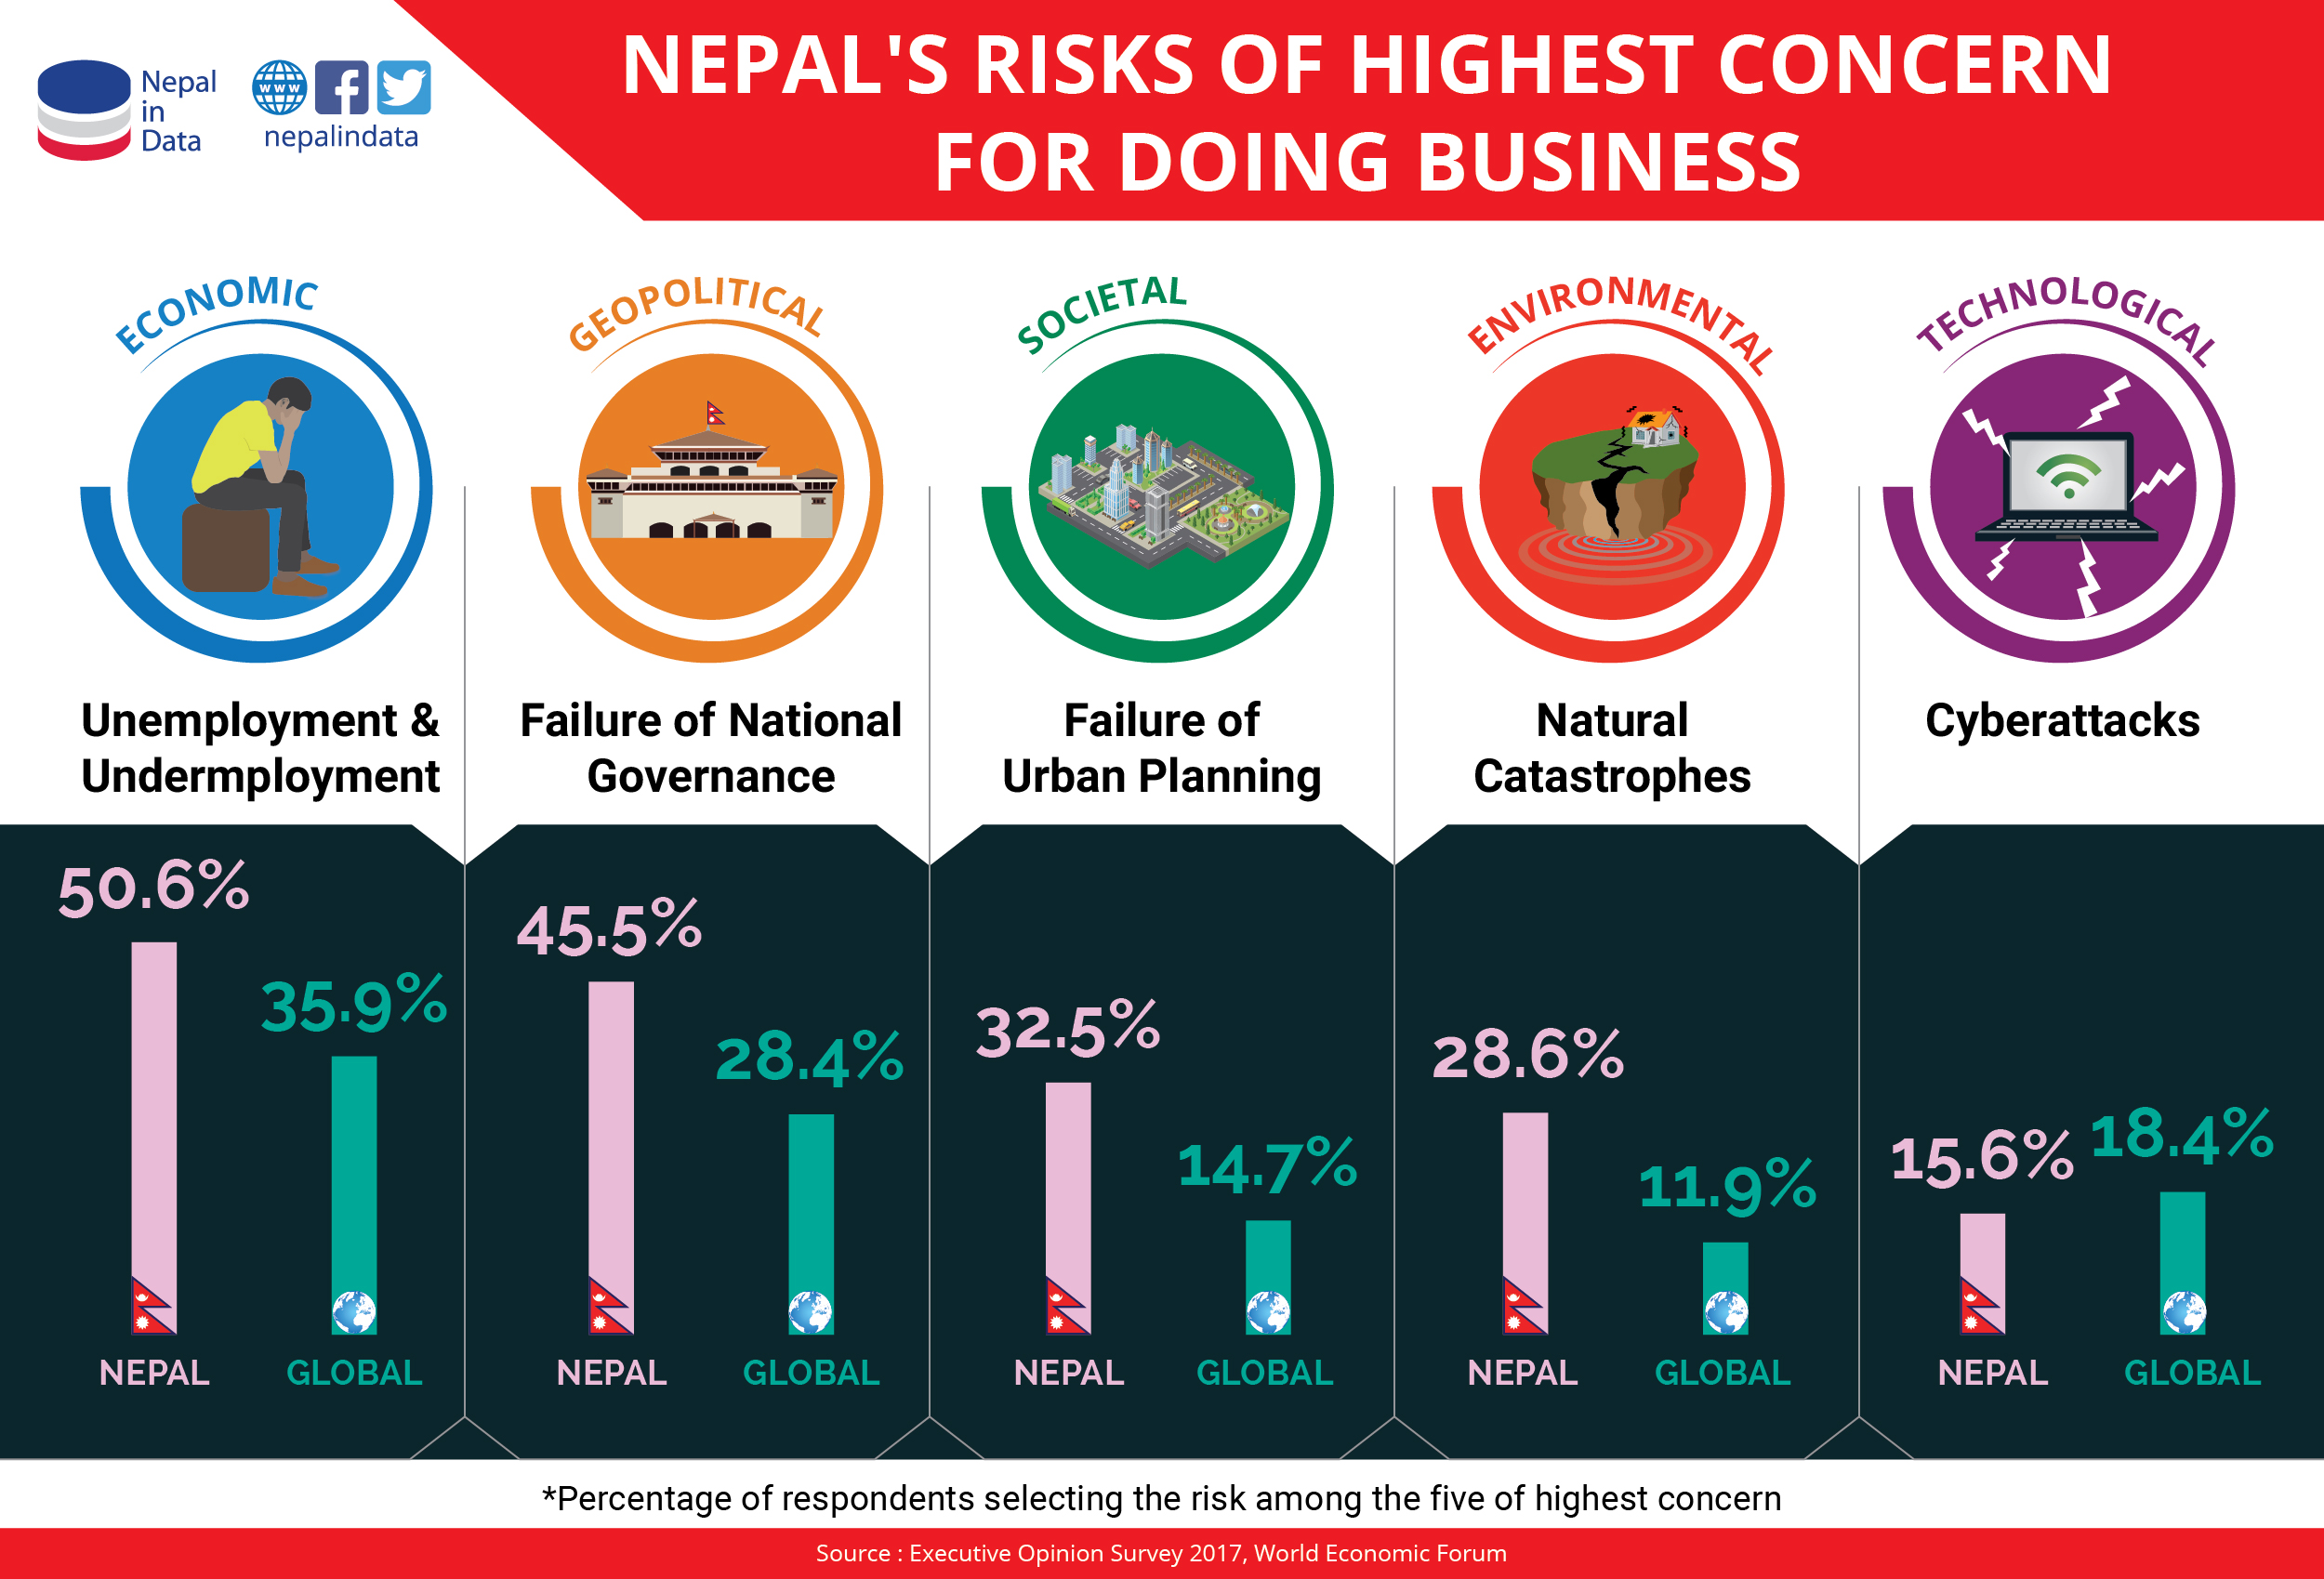 Nepal's Risks of Highest Concern in Doing Business | NiD